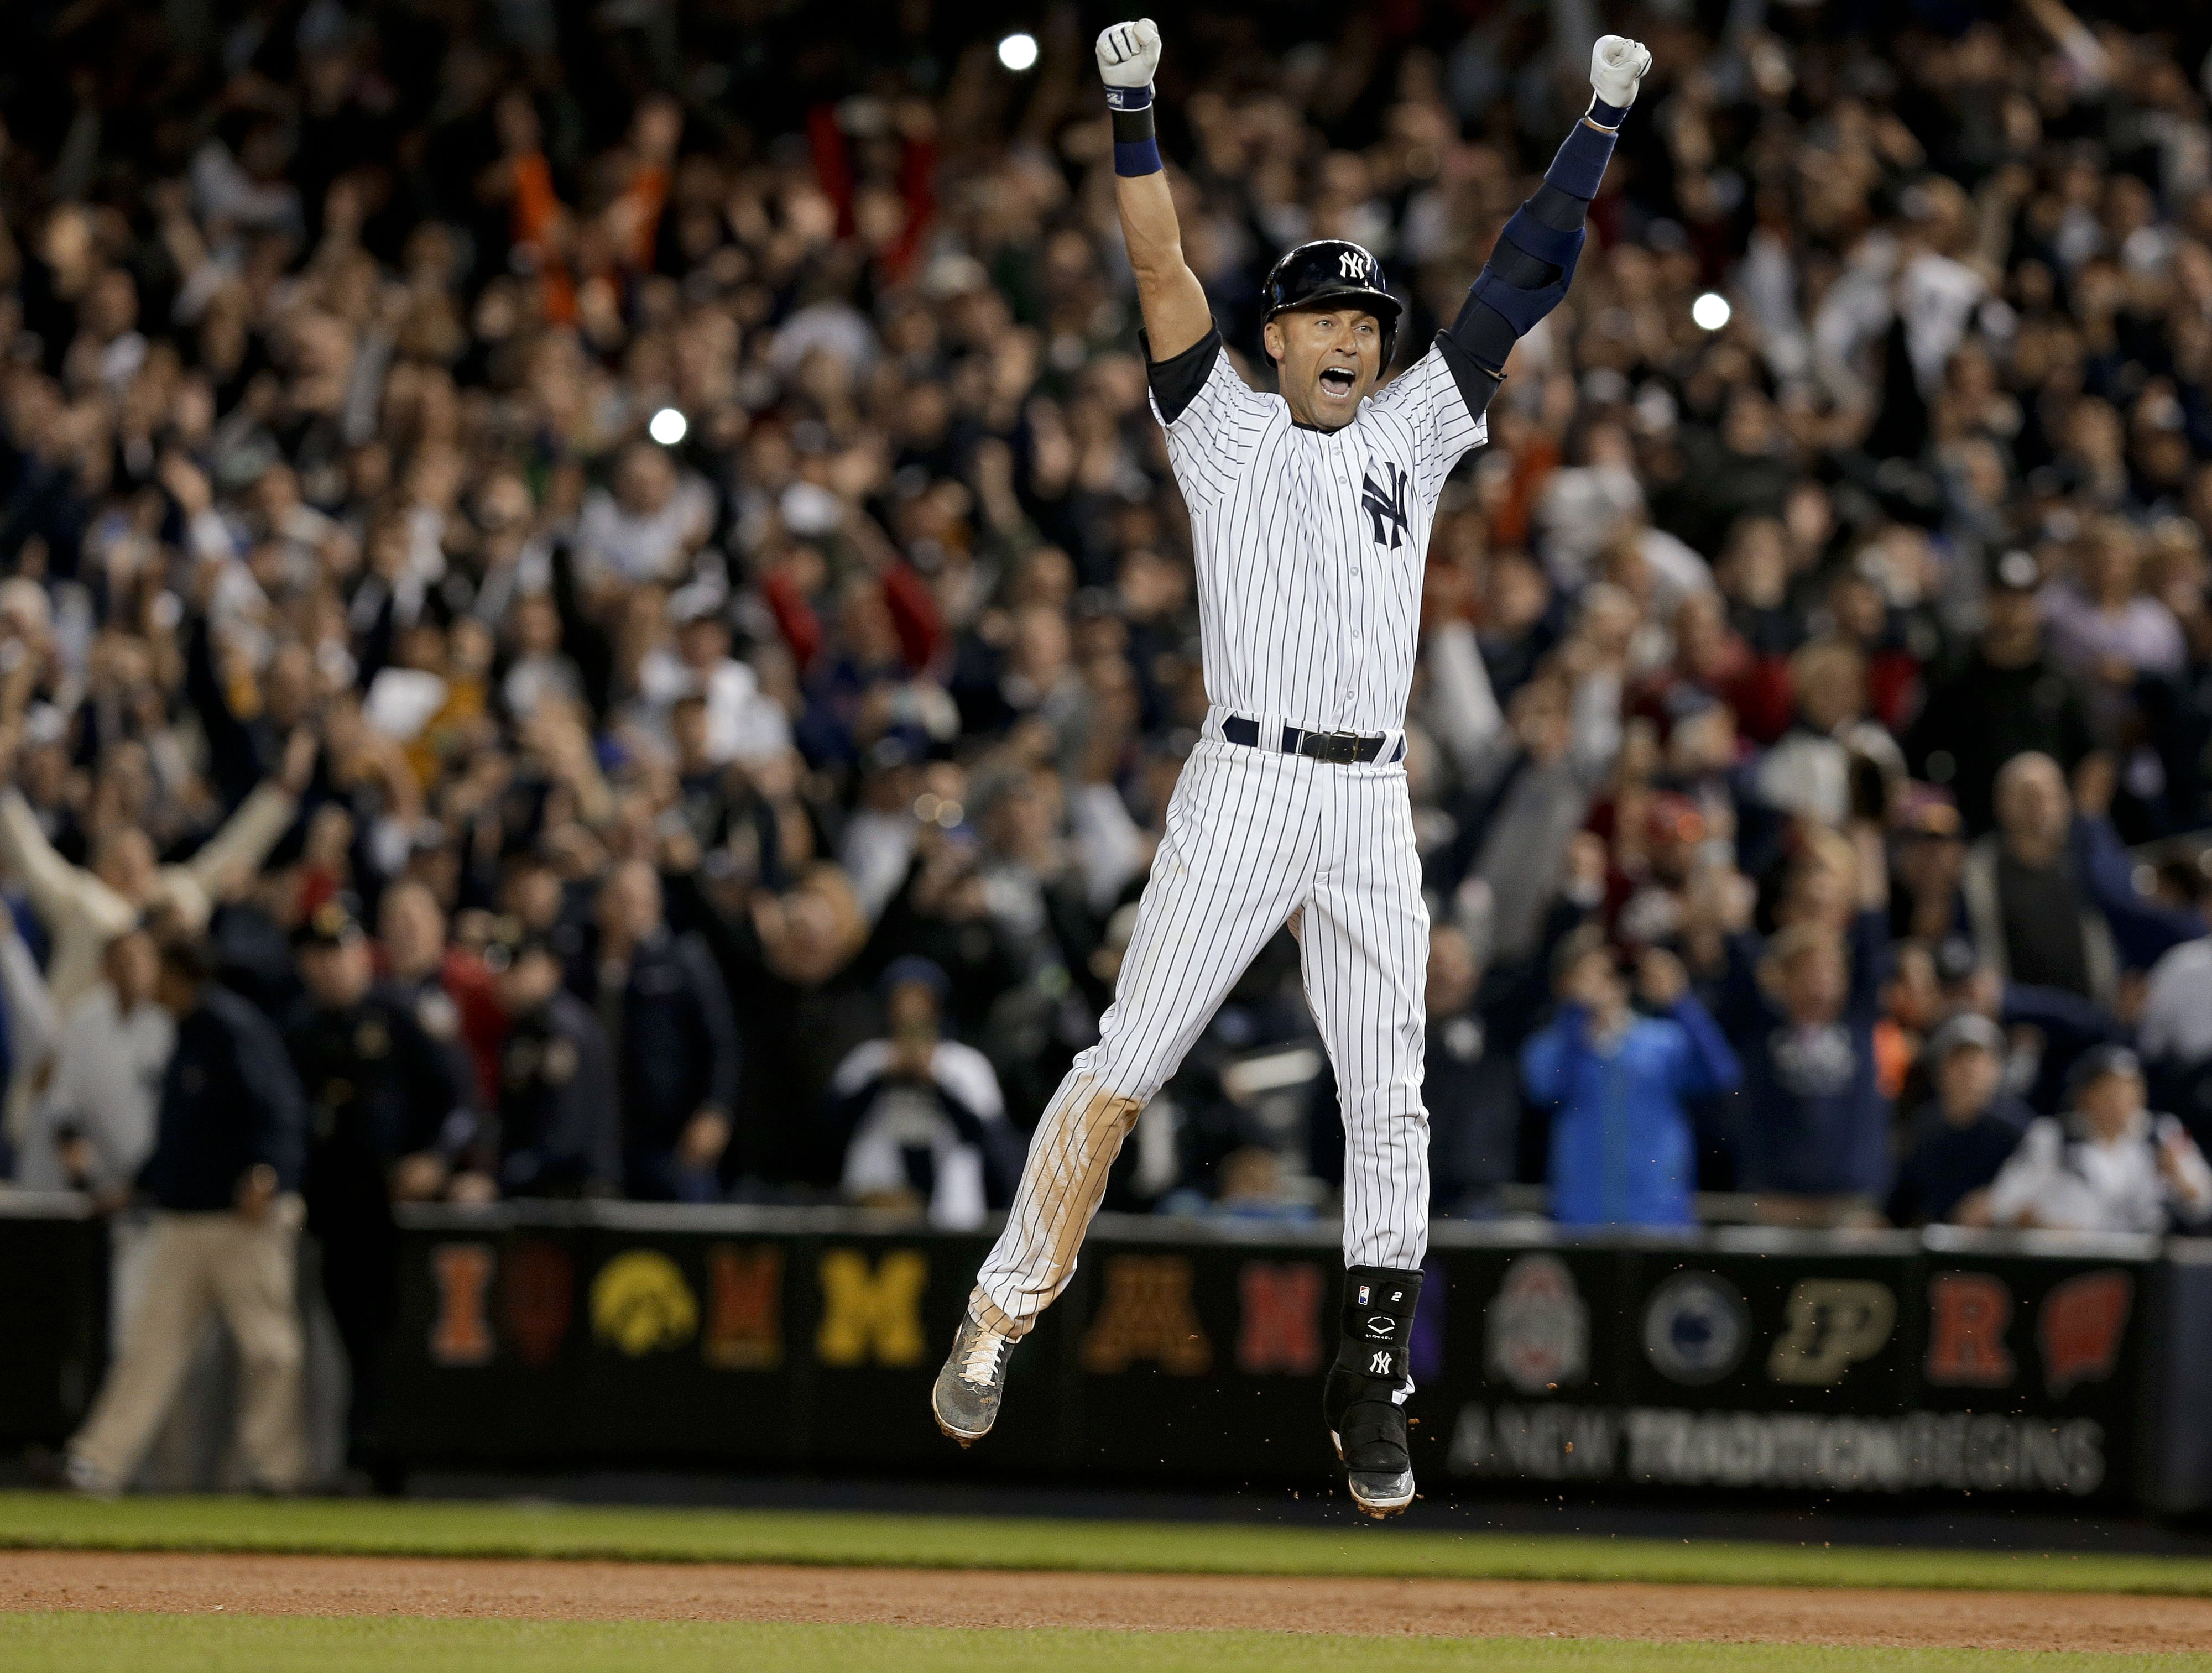 New York Yankees' Derek Jeter jumps after hitting the game-winning single against the Baltimore Orioles in the ninth inning of a baseball game, Sept. 25, 2014, in New York.